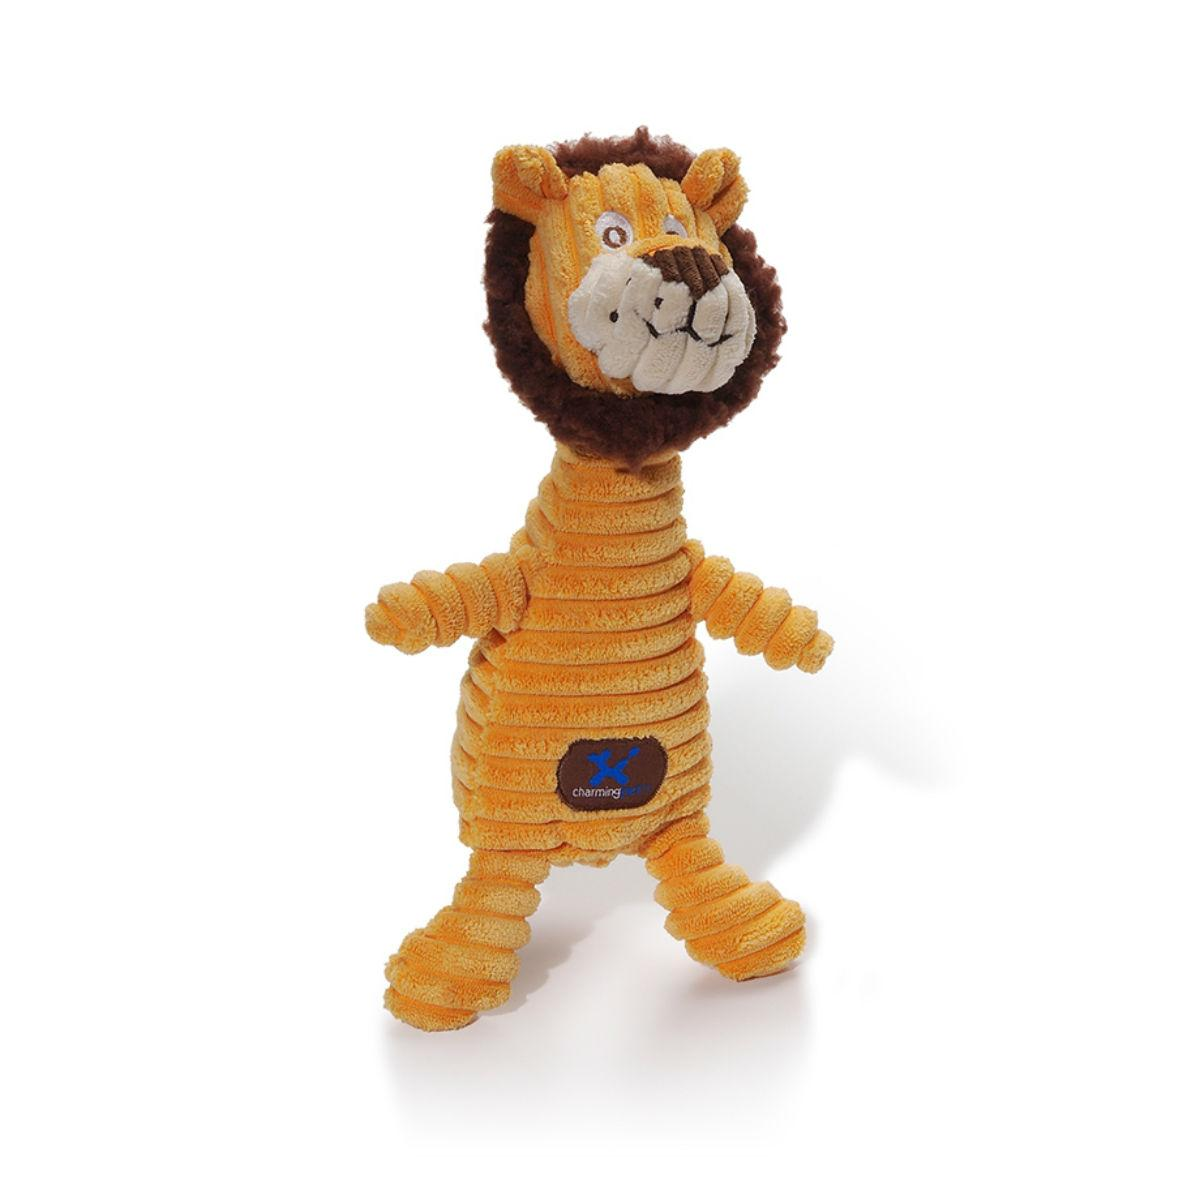 Charming Squeakin' Squiggles Dog Toy - Lion